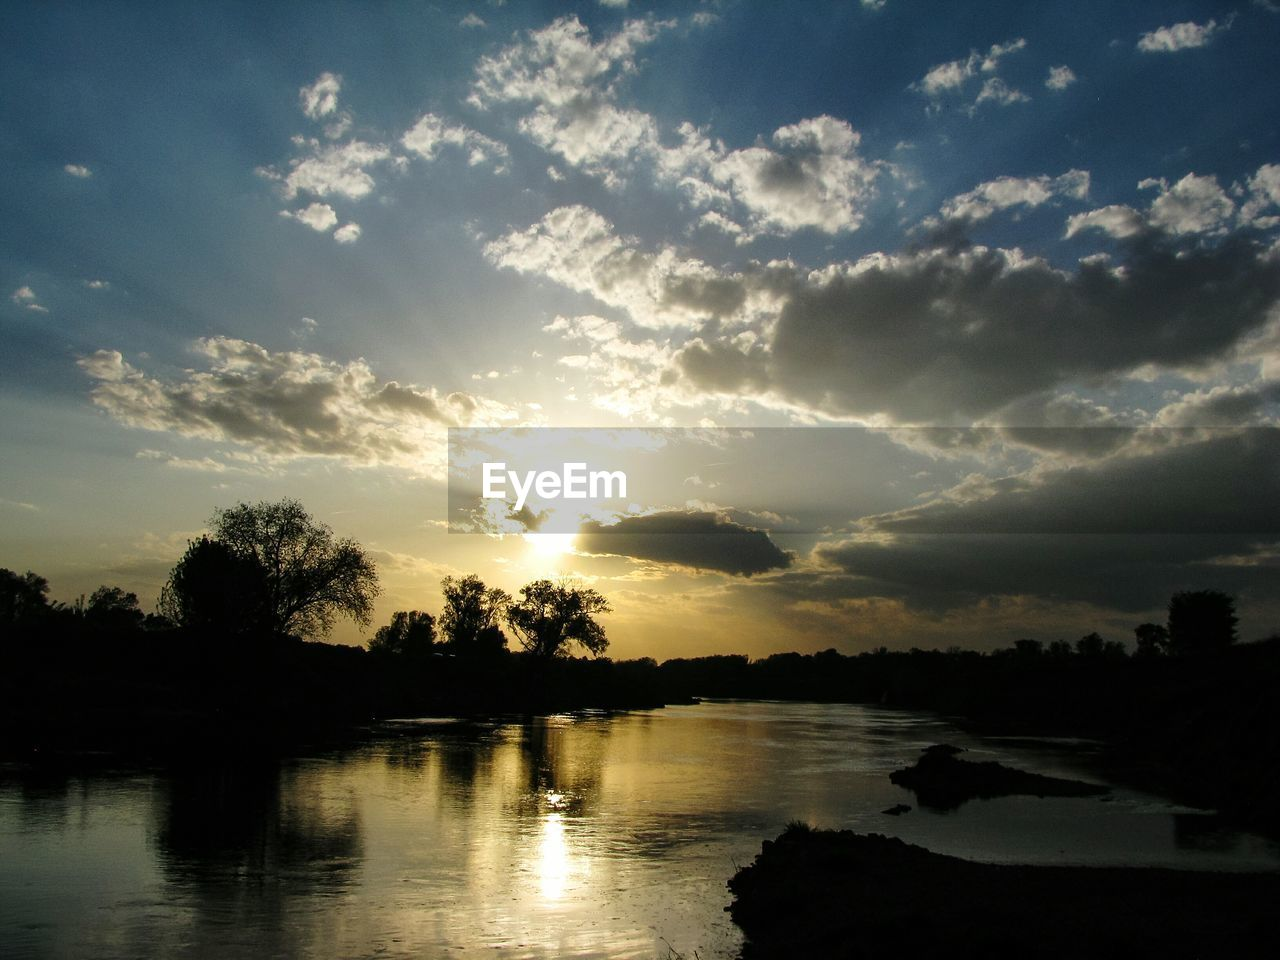 sky, cloud - sky, sunset, water, beauty in nature, scenics - nature, tree, silhouette, tranquility, tranquil scene, reflection, plant, nature, lake, idyllic, no people, non-urban scene, outdoors, environment